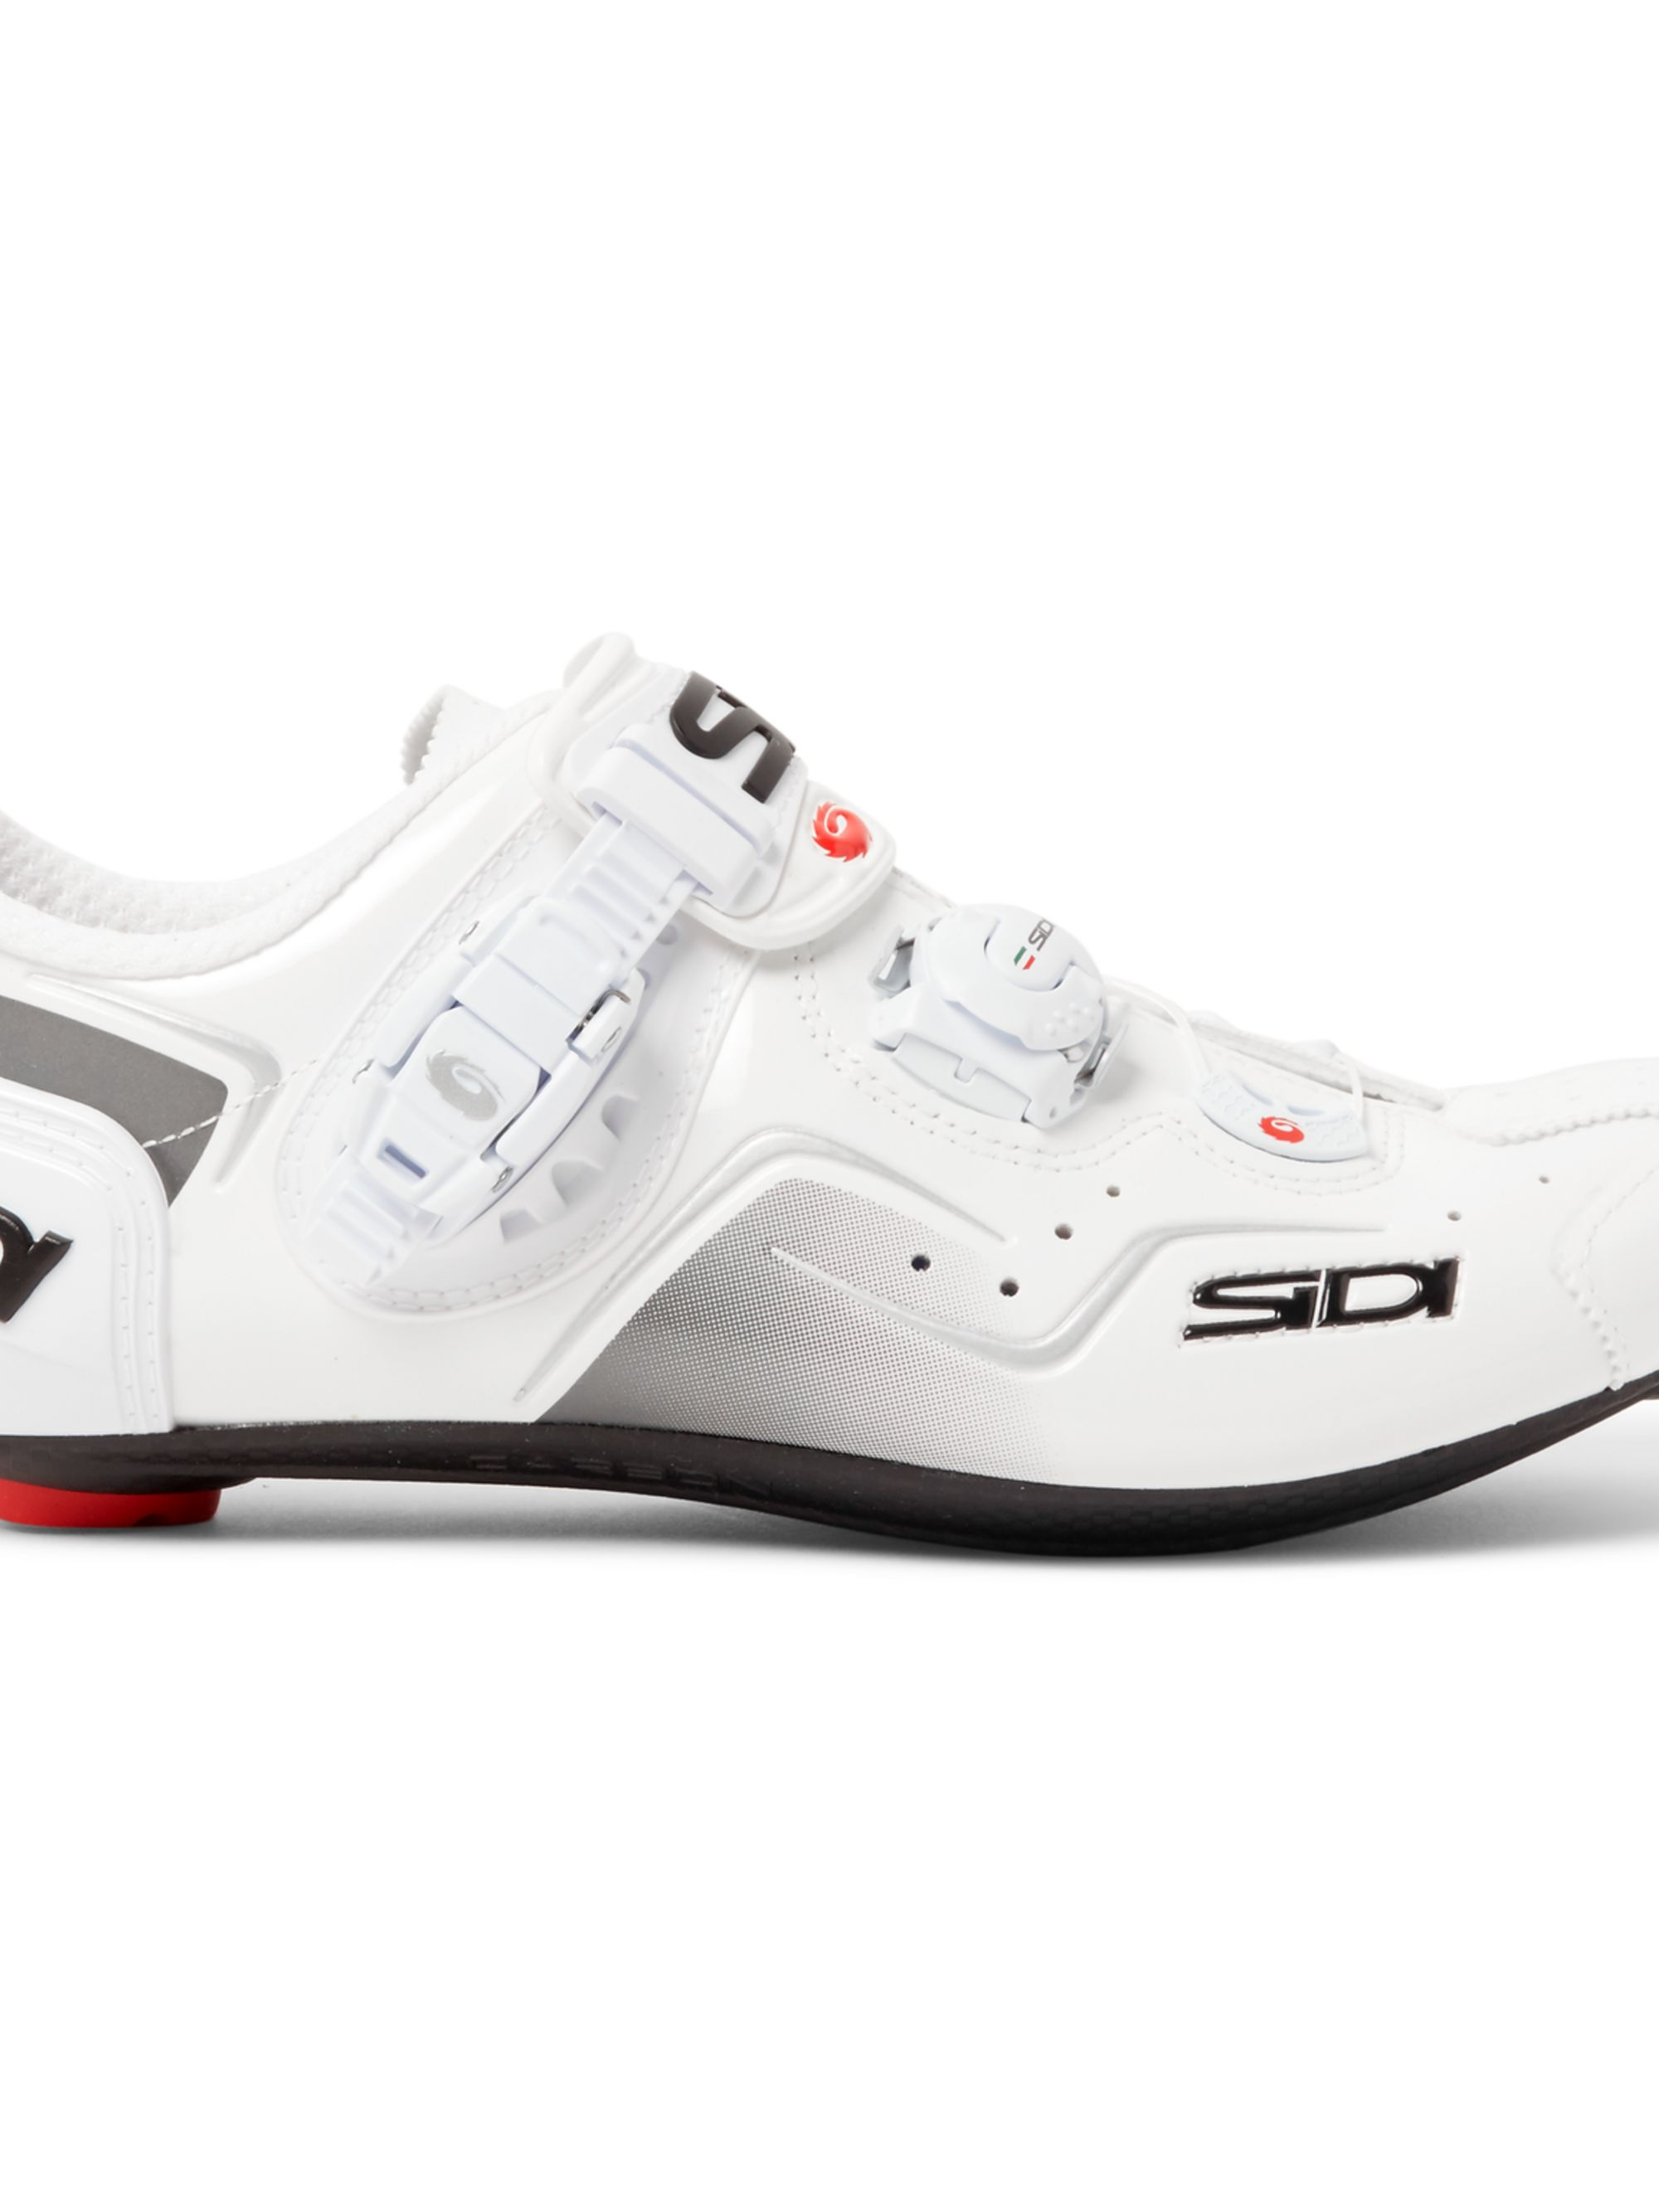 Sidi Kaos Politex Cycling Shoes